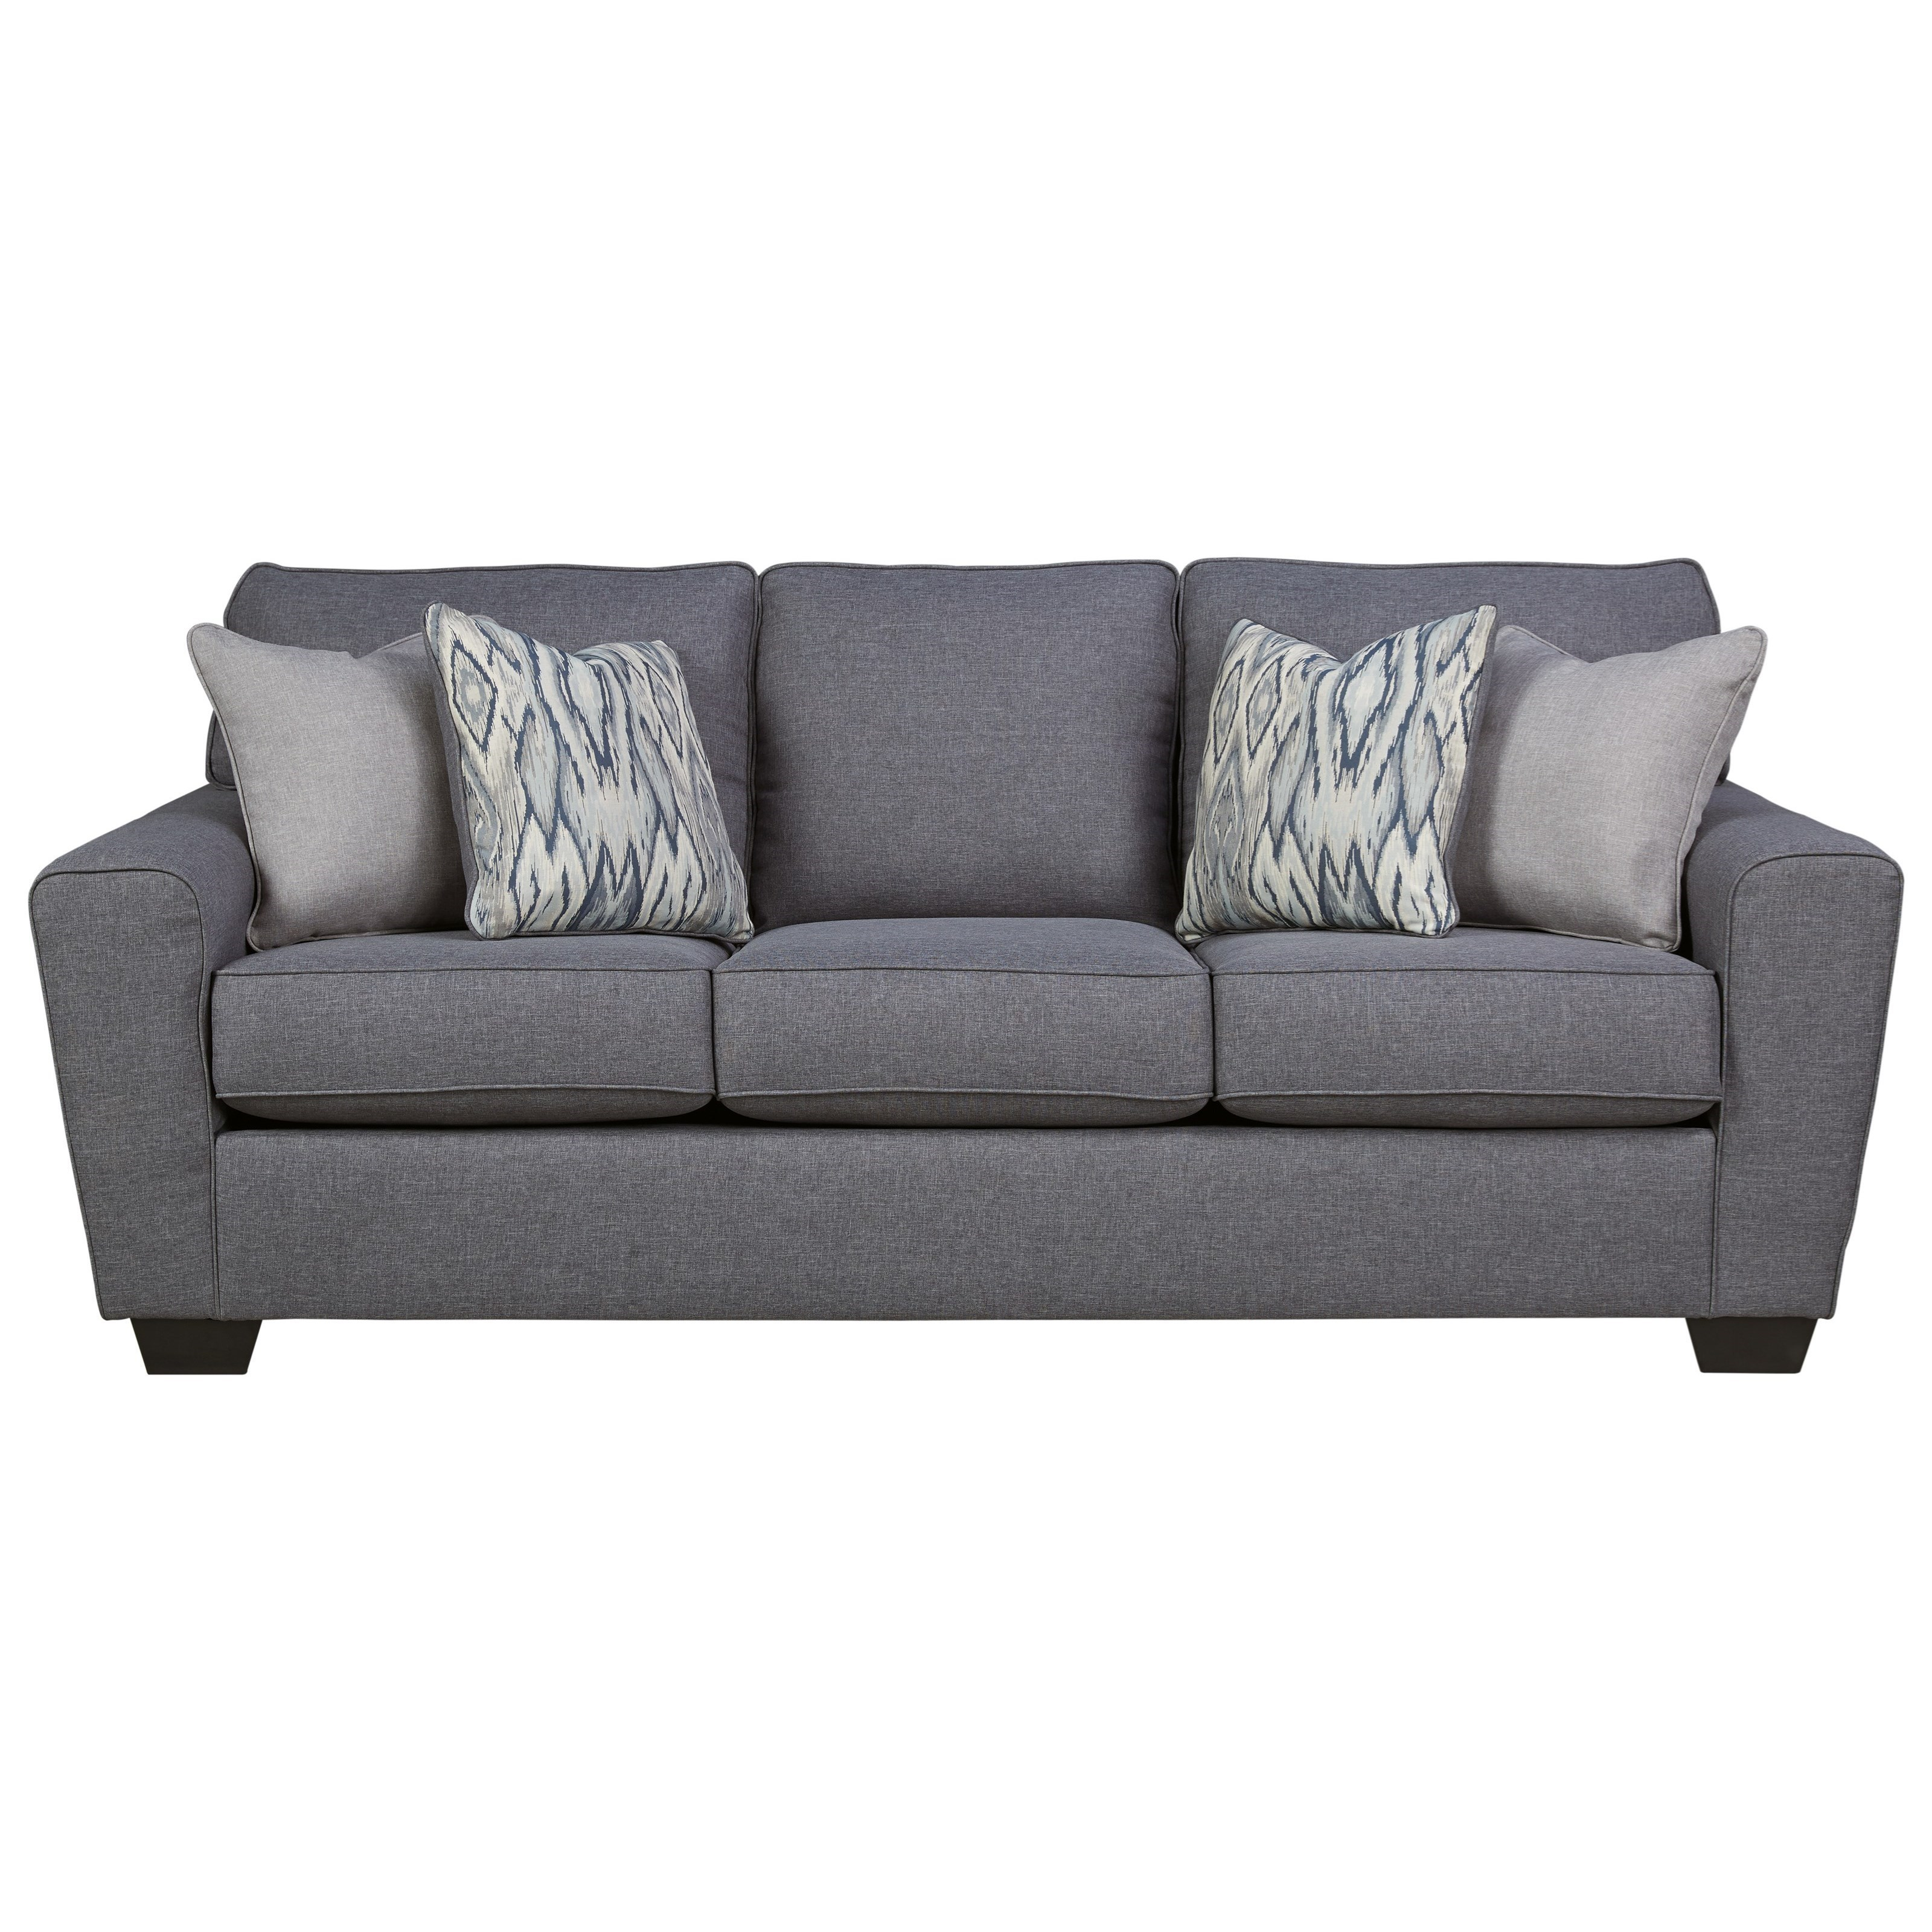 Ashley Furniture Calion Contemporary Queen Sofa Sleeper With Memory Foam  Mattress